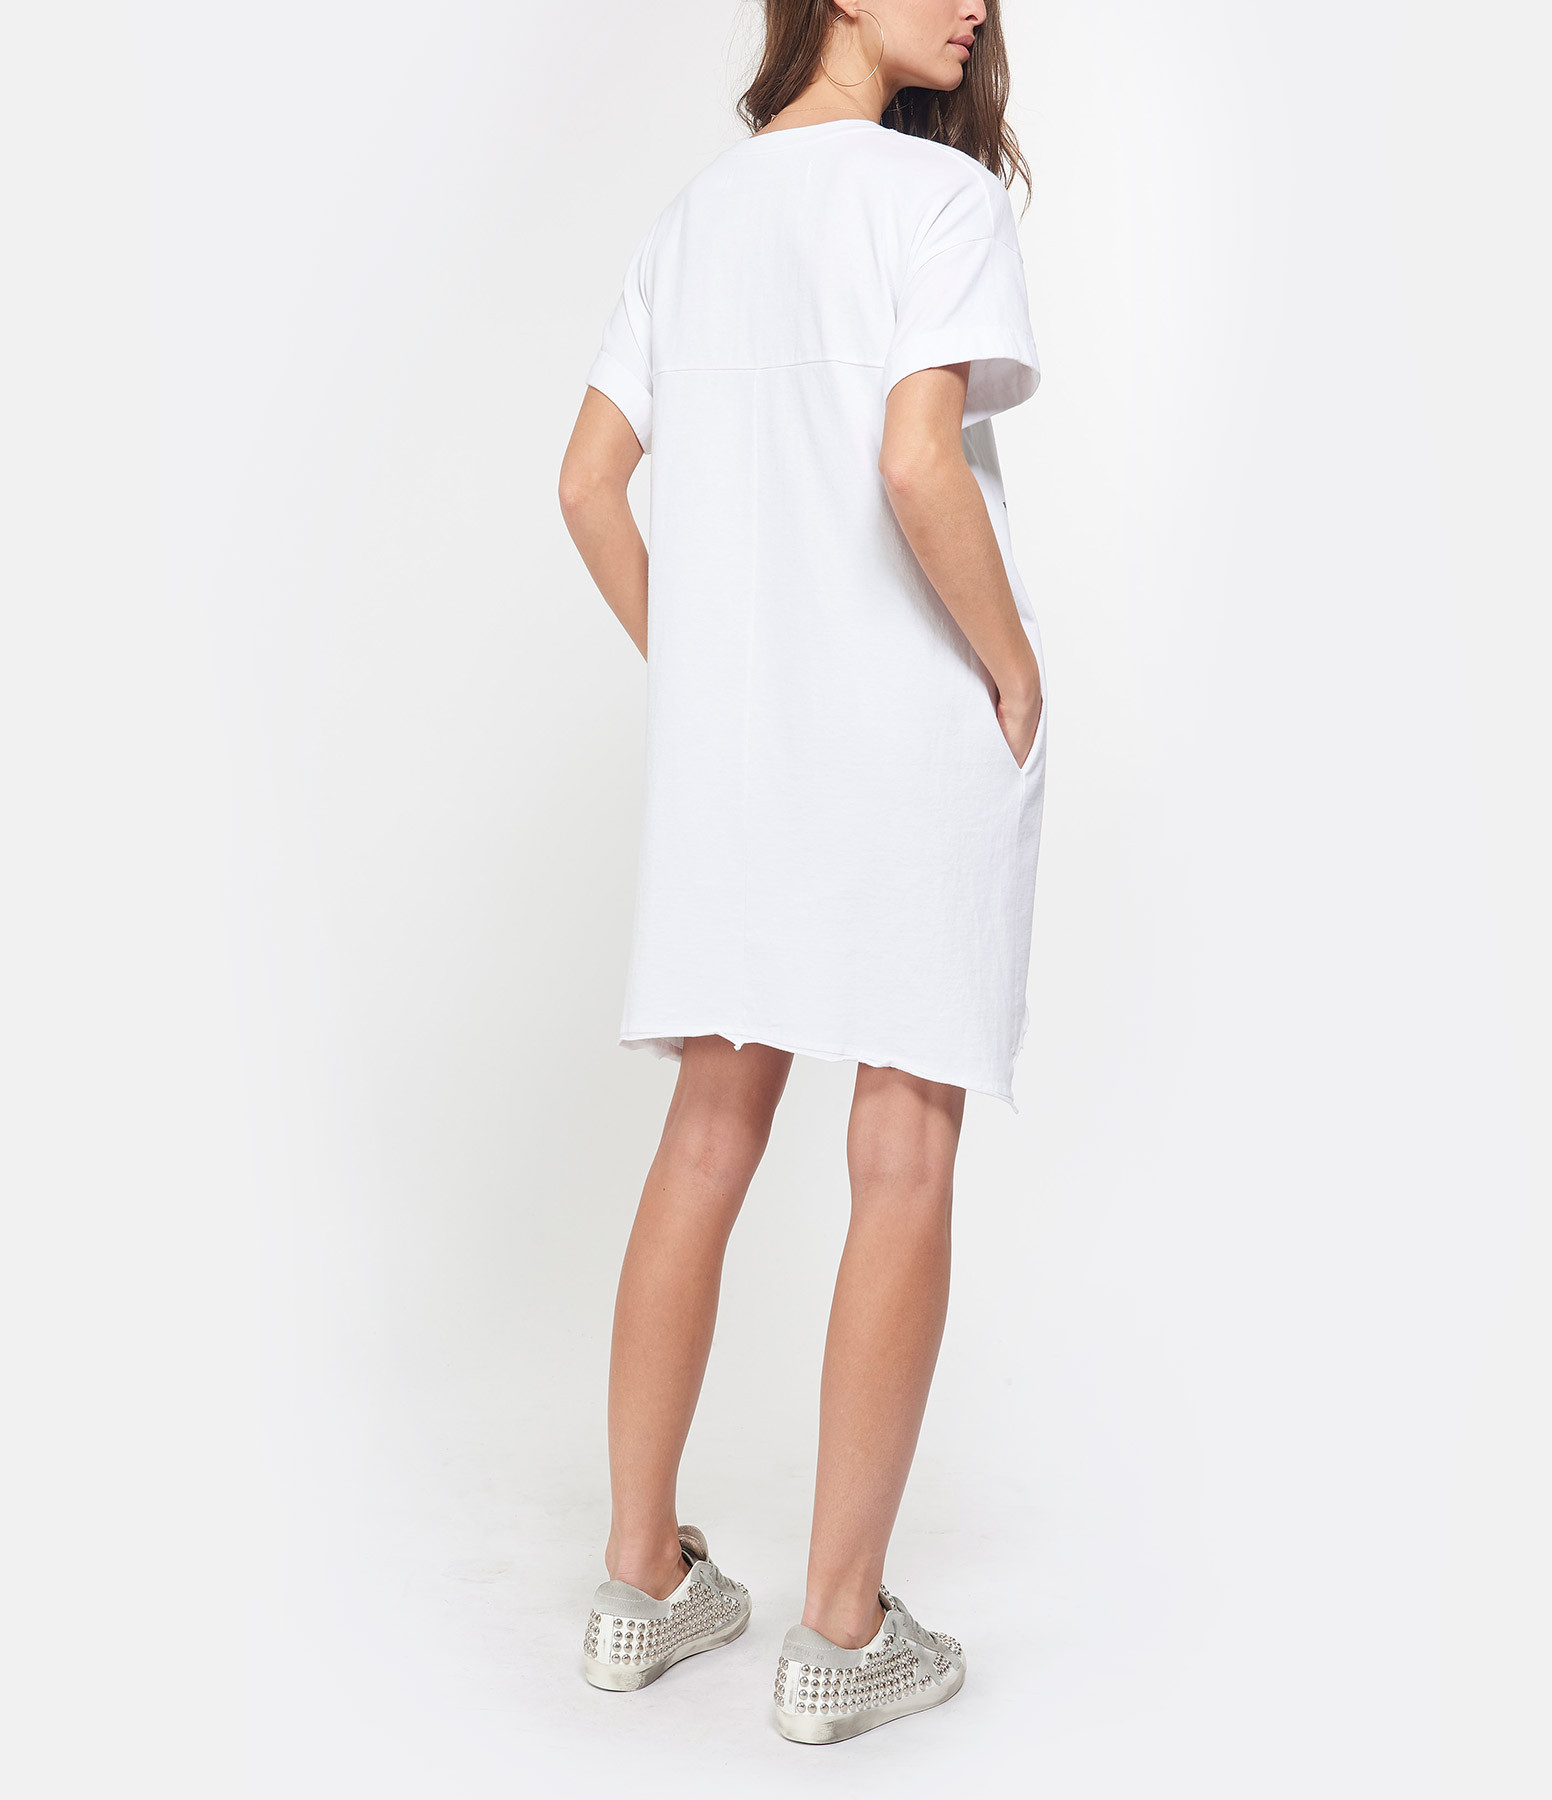 MARGAUX LONNBERG - Robe Abby Coton Blanc